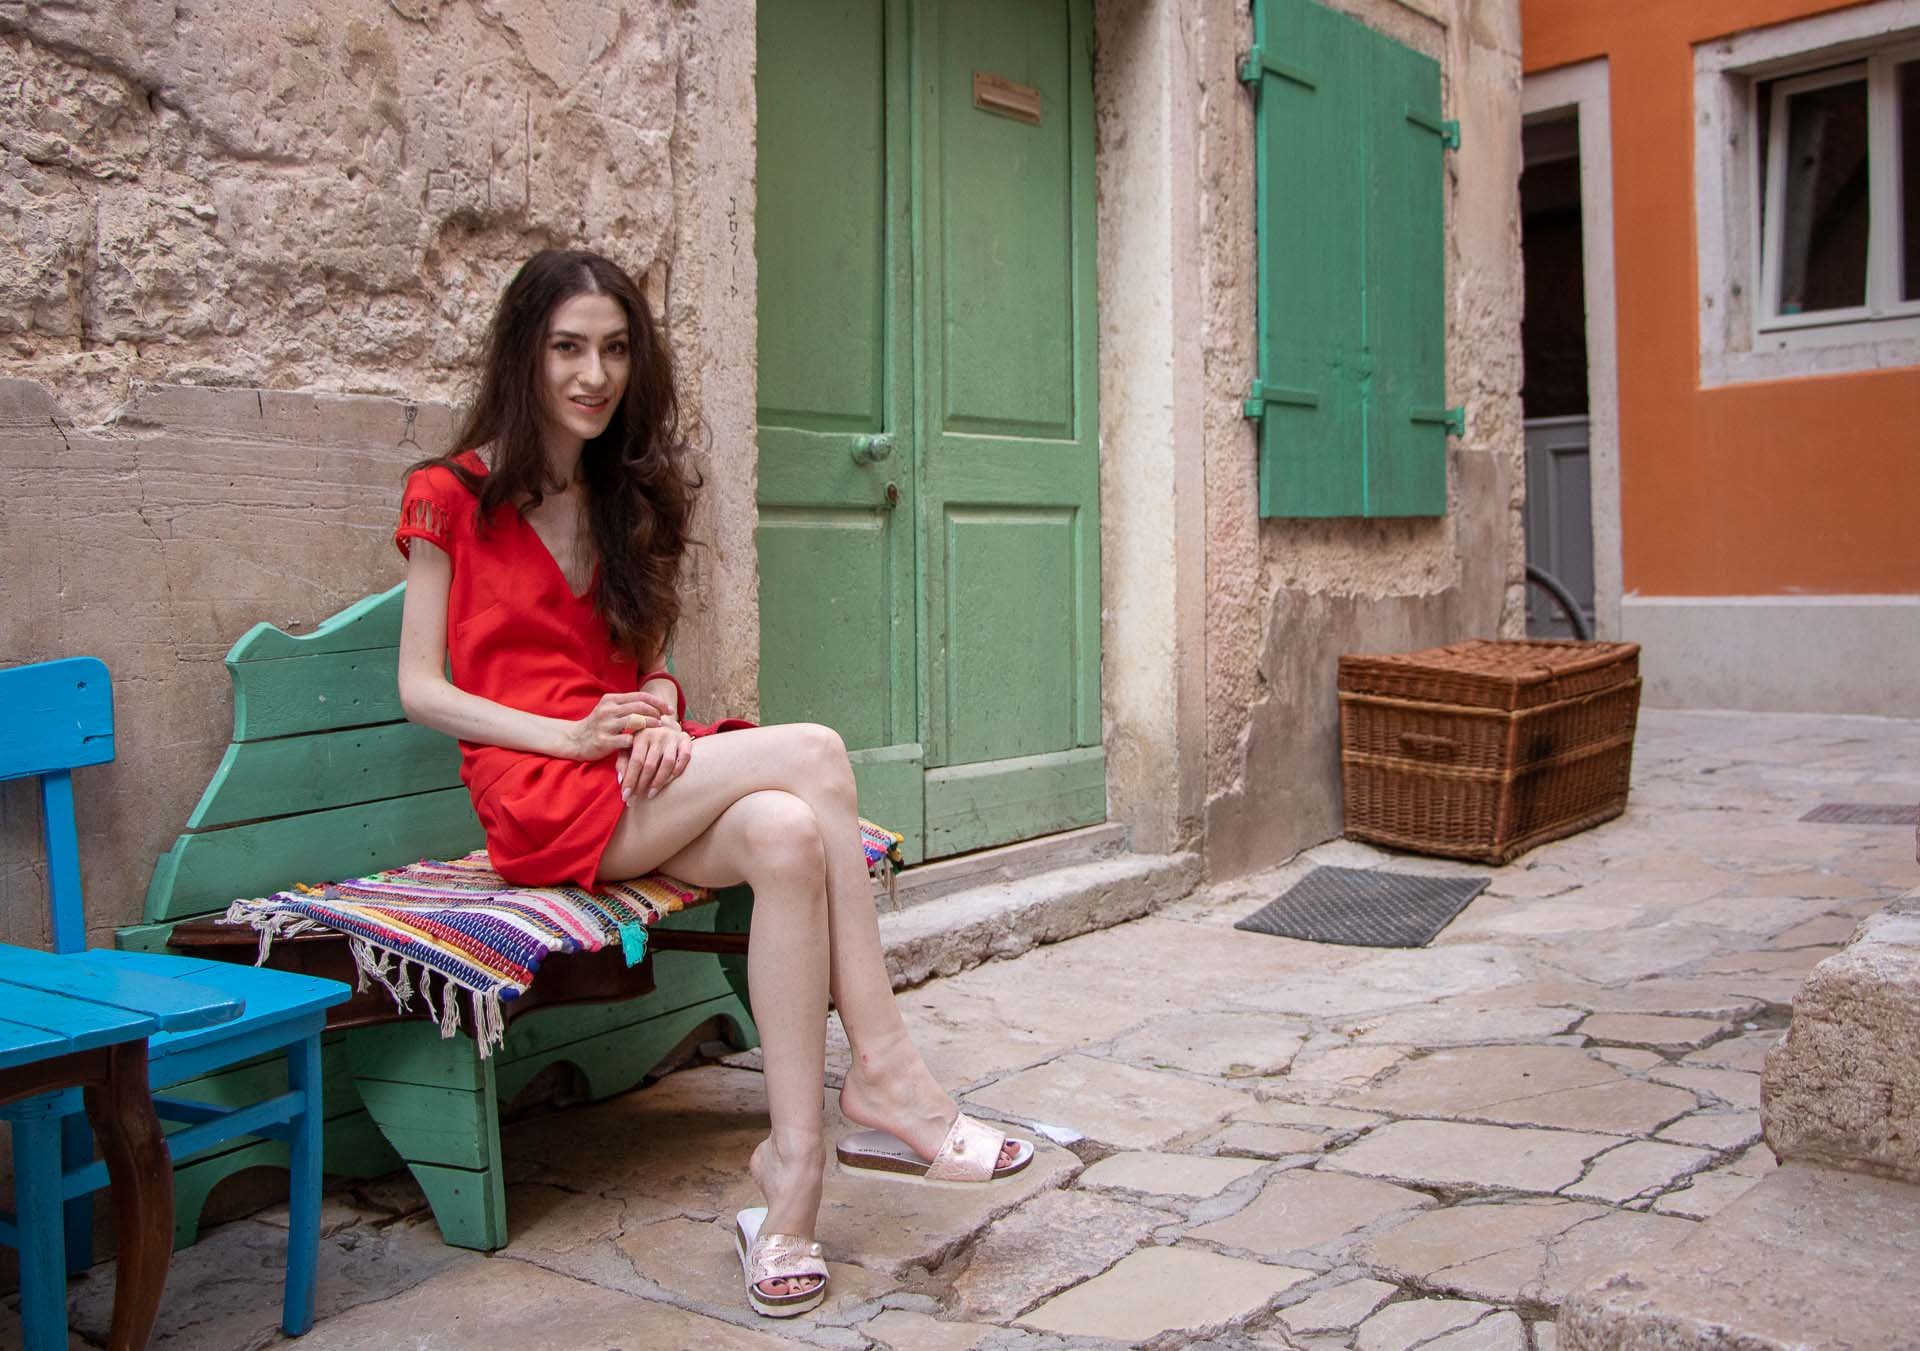 Fashion Blogger Veronika Lipar of Brunette from Wall Street wearing open back chic red romper, crystal-embellished lace luxe pool slides, pink top handle bag while sitting on the bench crossing legs in Rovinj